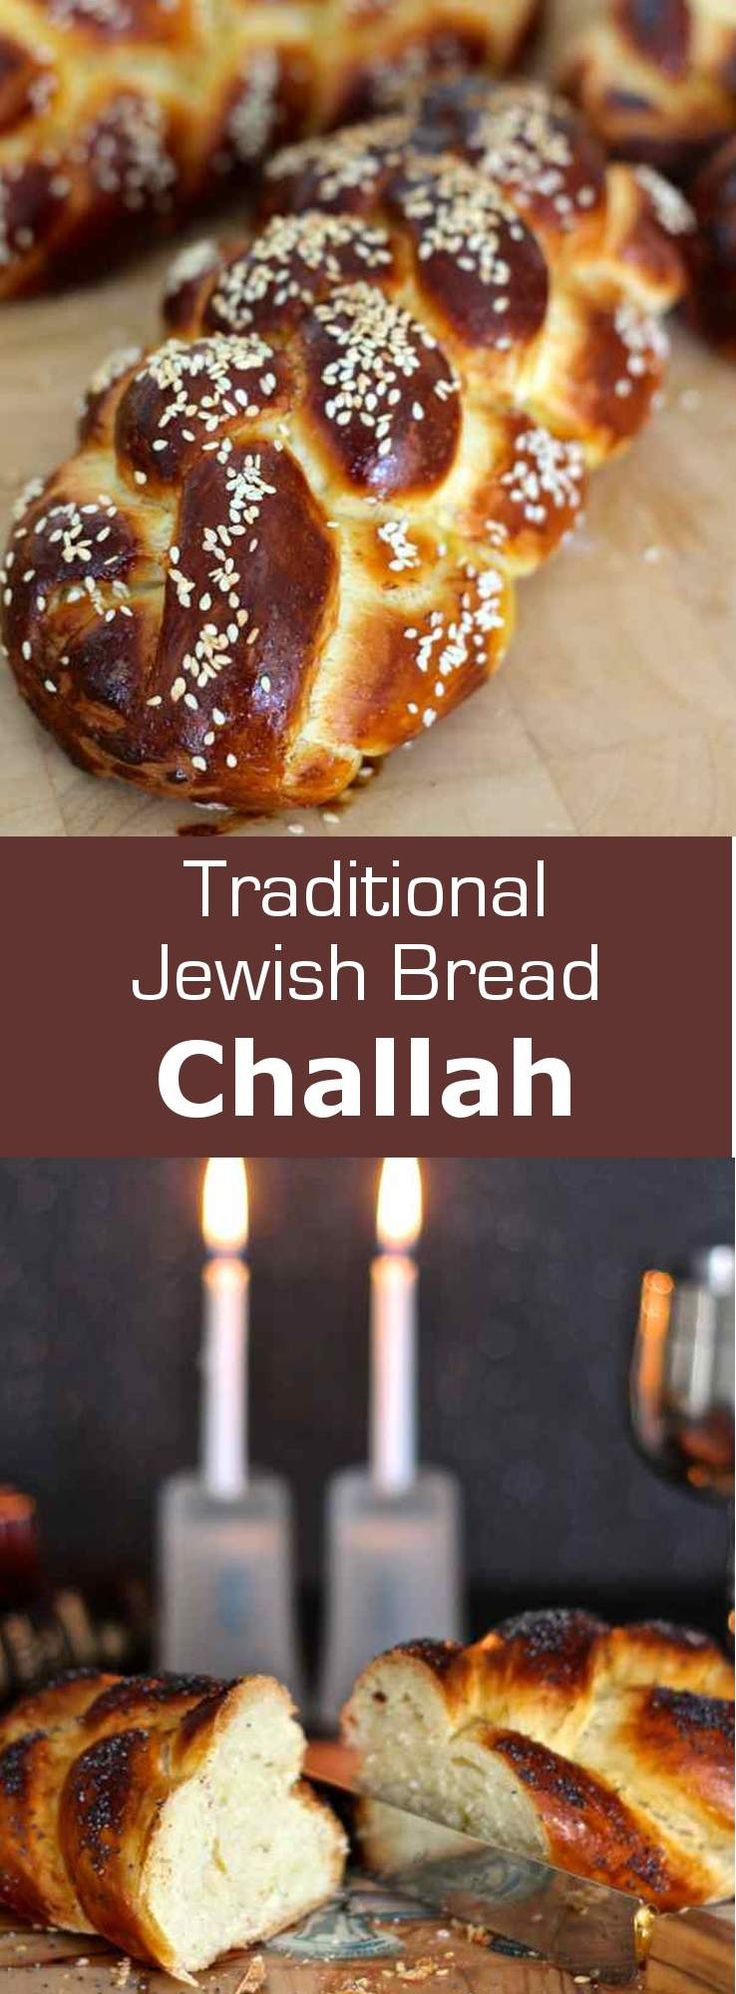 Challah is a traditional jewish bread, close to a brioche, that is often braided. It is prepared for shabbath and Jewish holidays. #jewish #bread #196flavors